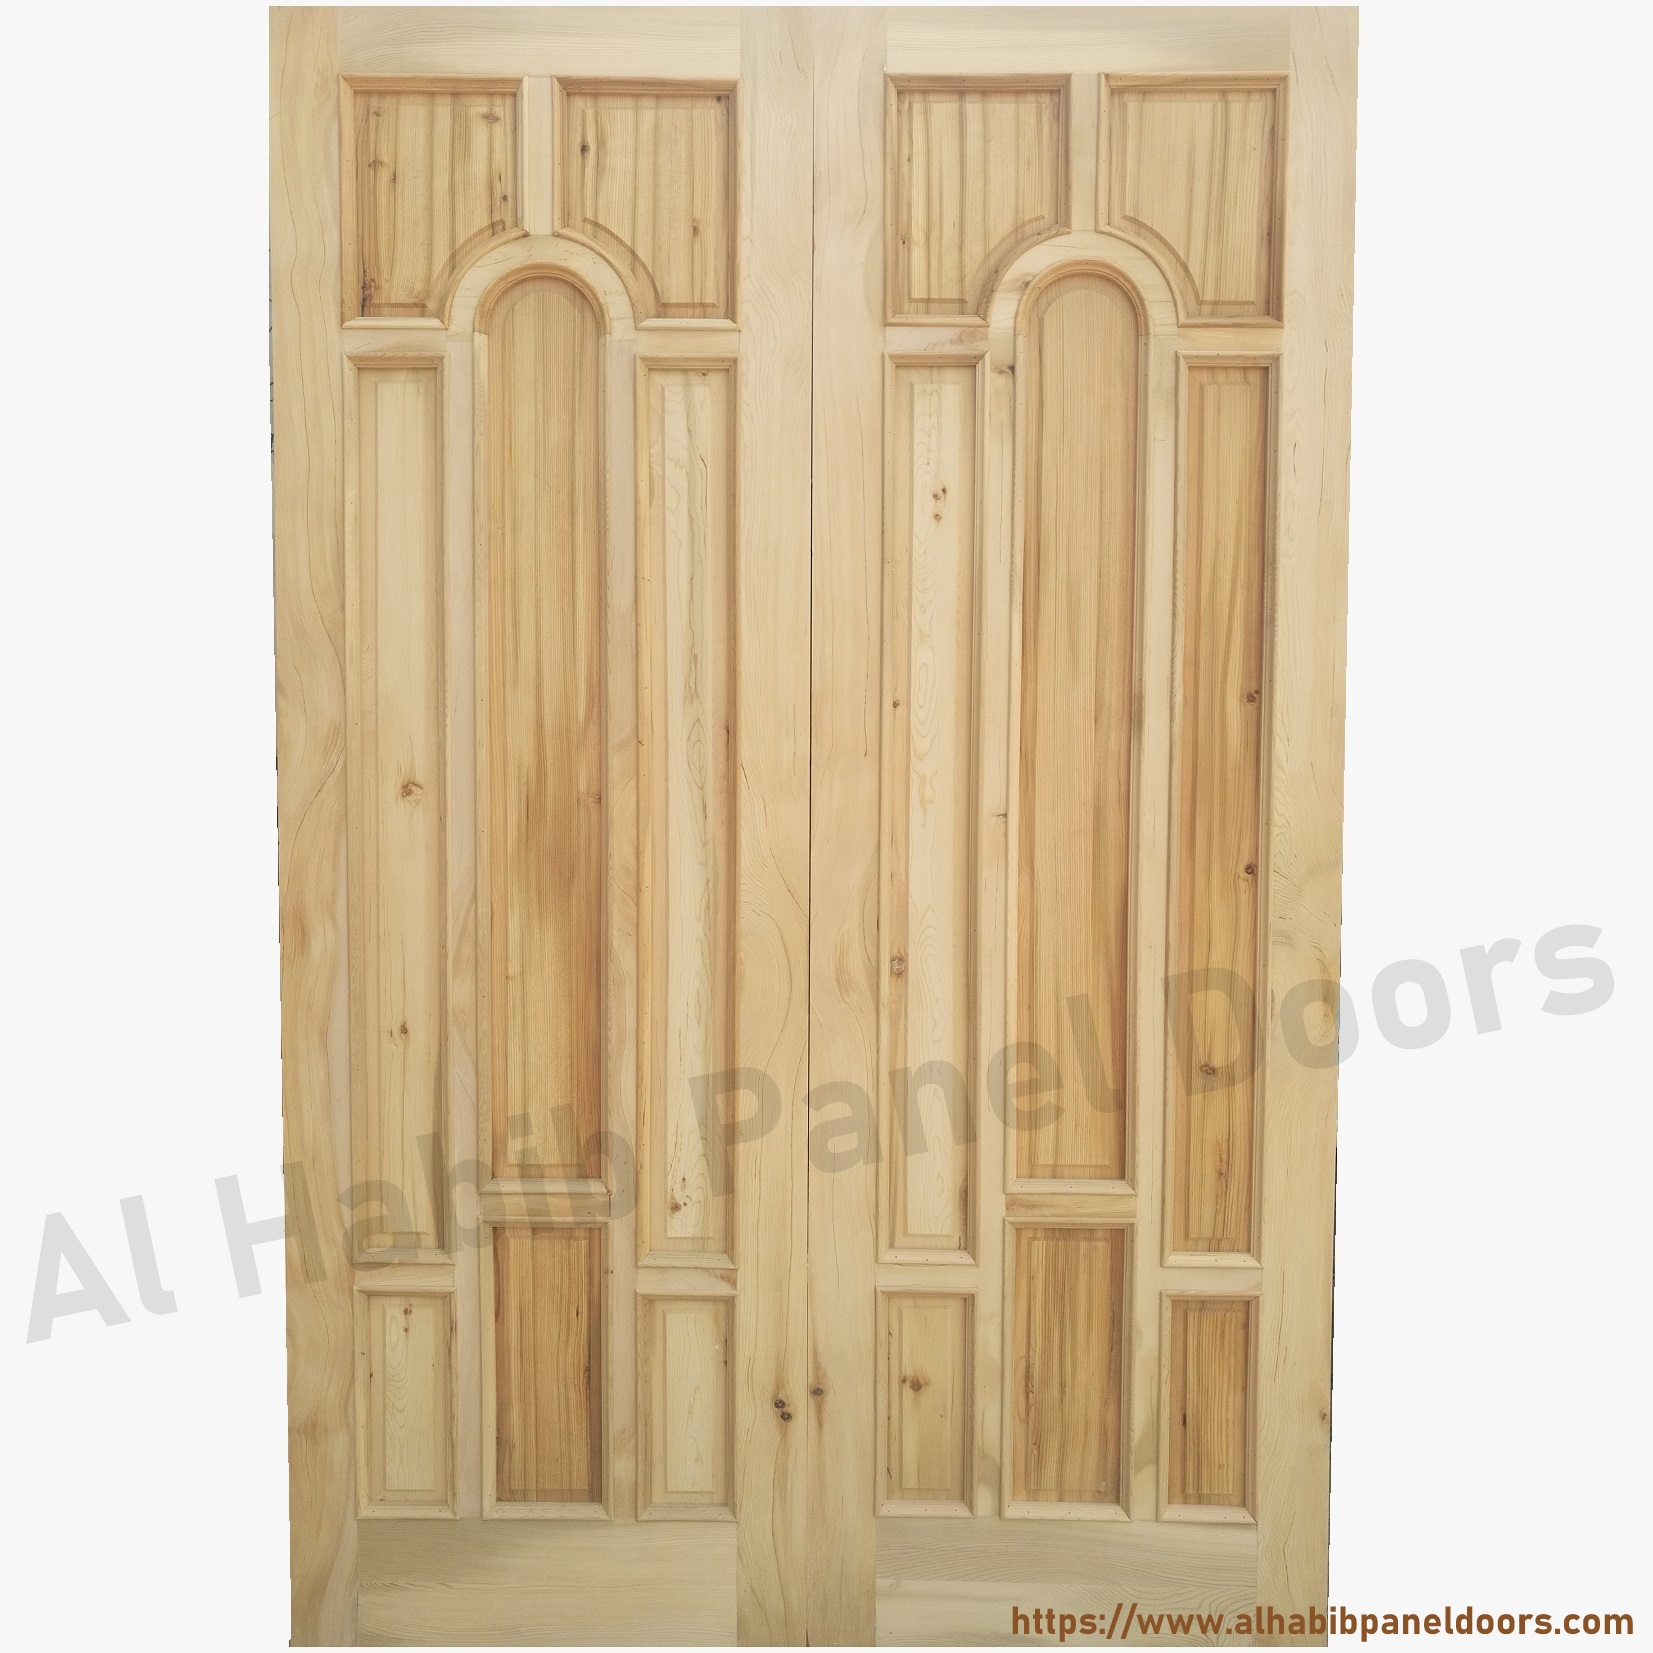 Main double door hpd329 main doors al habib panel doors for Main door design of wood